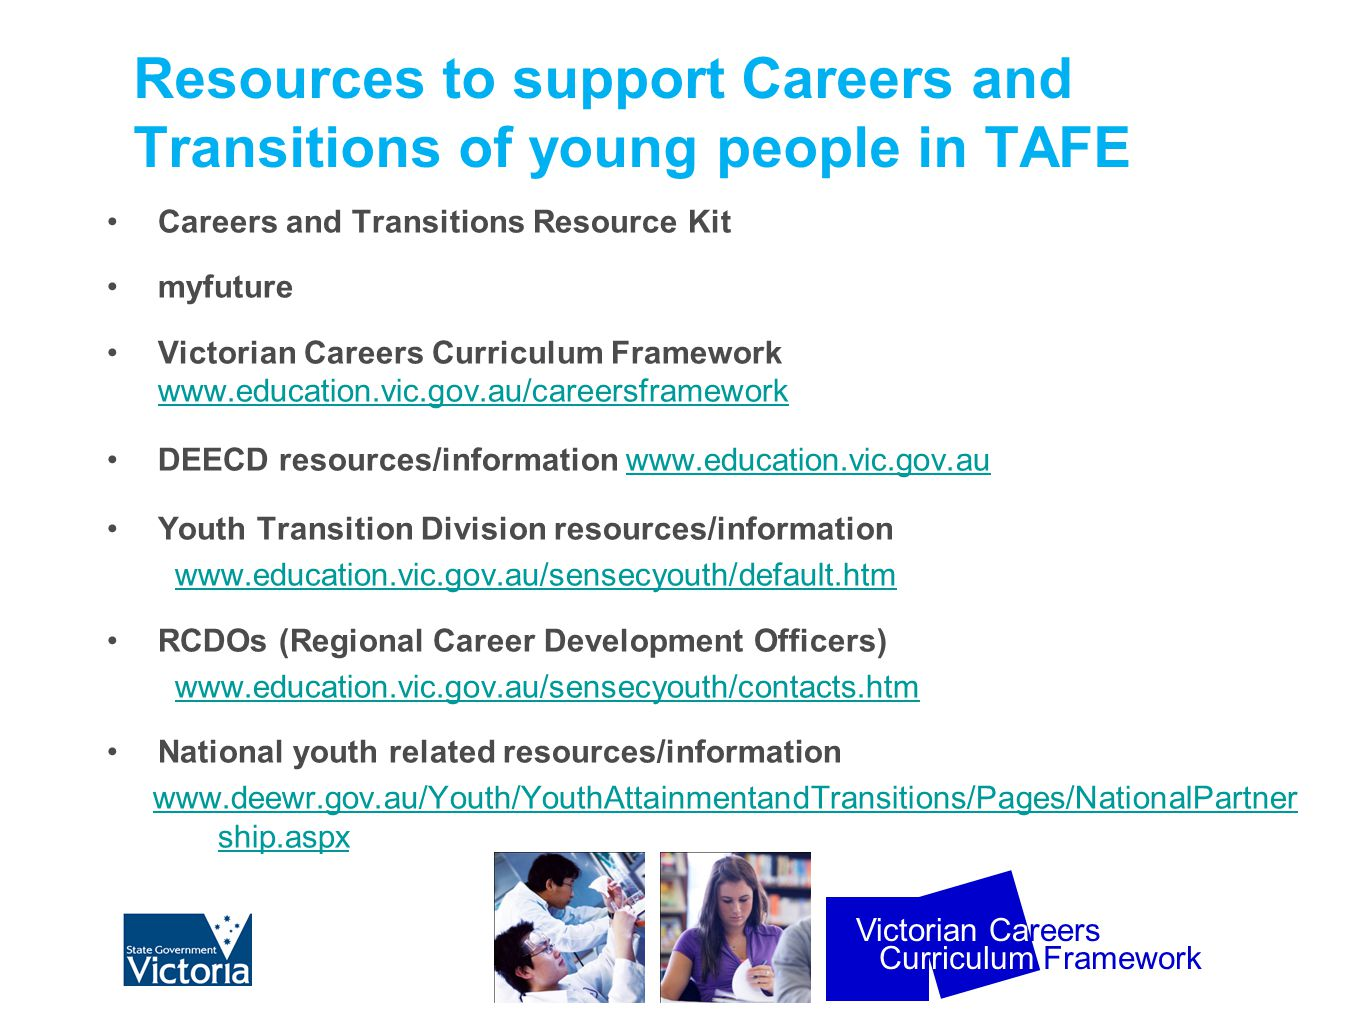 Curriculum Framework Victorian Careers Resources to support Careers and Transitions of young people in TAFE Careers and Transitions Resource Kit myfuture Victorian Careers Curriculum Framework www.education.vic.gov.au/careersframework www.education.vic.gov.au/careersframework DEECD resources/information www.education.vic.gov.auwww.education.vic.gov.au Youth Transition Division resources/information www.education.vic.gov.au/sensecyouth/default.htm RCDOs (Regional Career Development Officers) www.education.vic.gov.au/sensecyouth/contacts.htm National youth related resources/information www.deewr.gov.au/Youth/YouthAttainmentandTransitions/Pages/NationalPartner ship.aspx